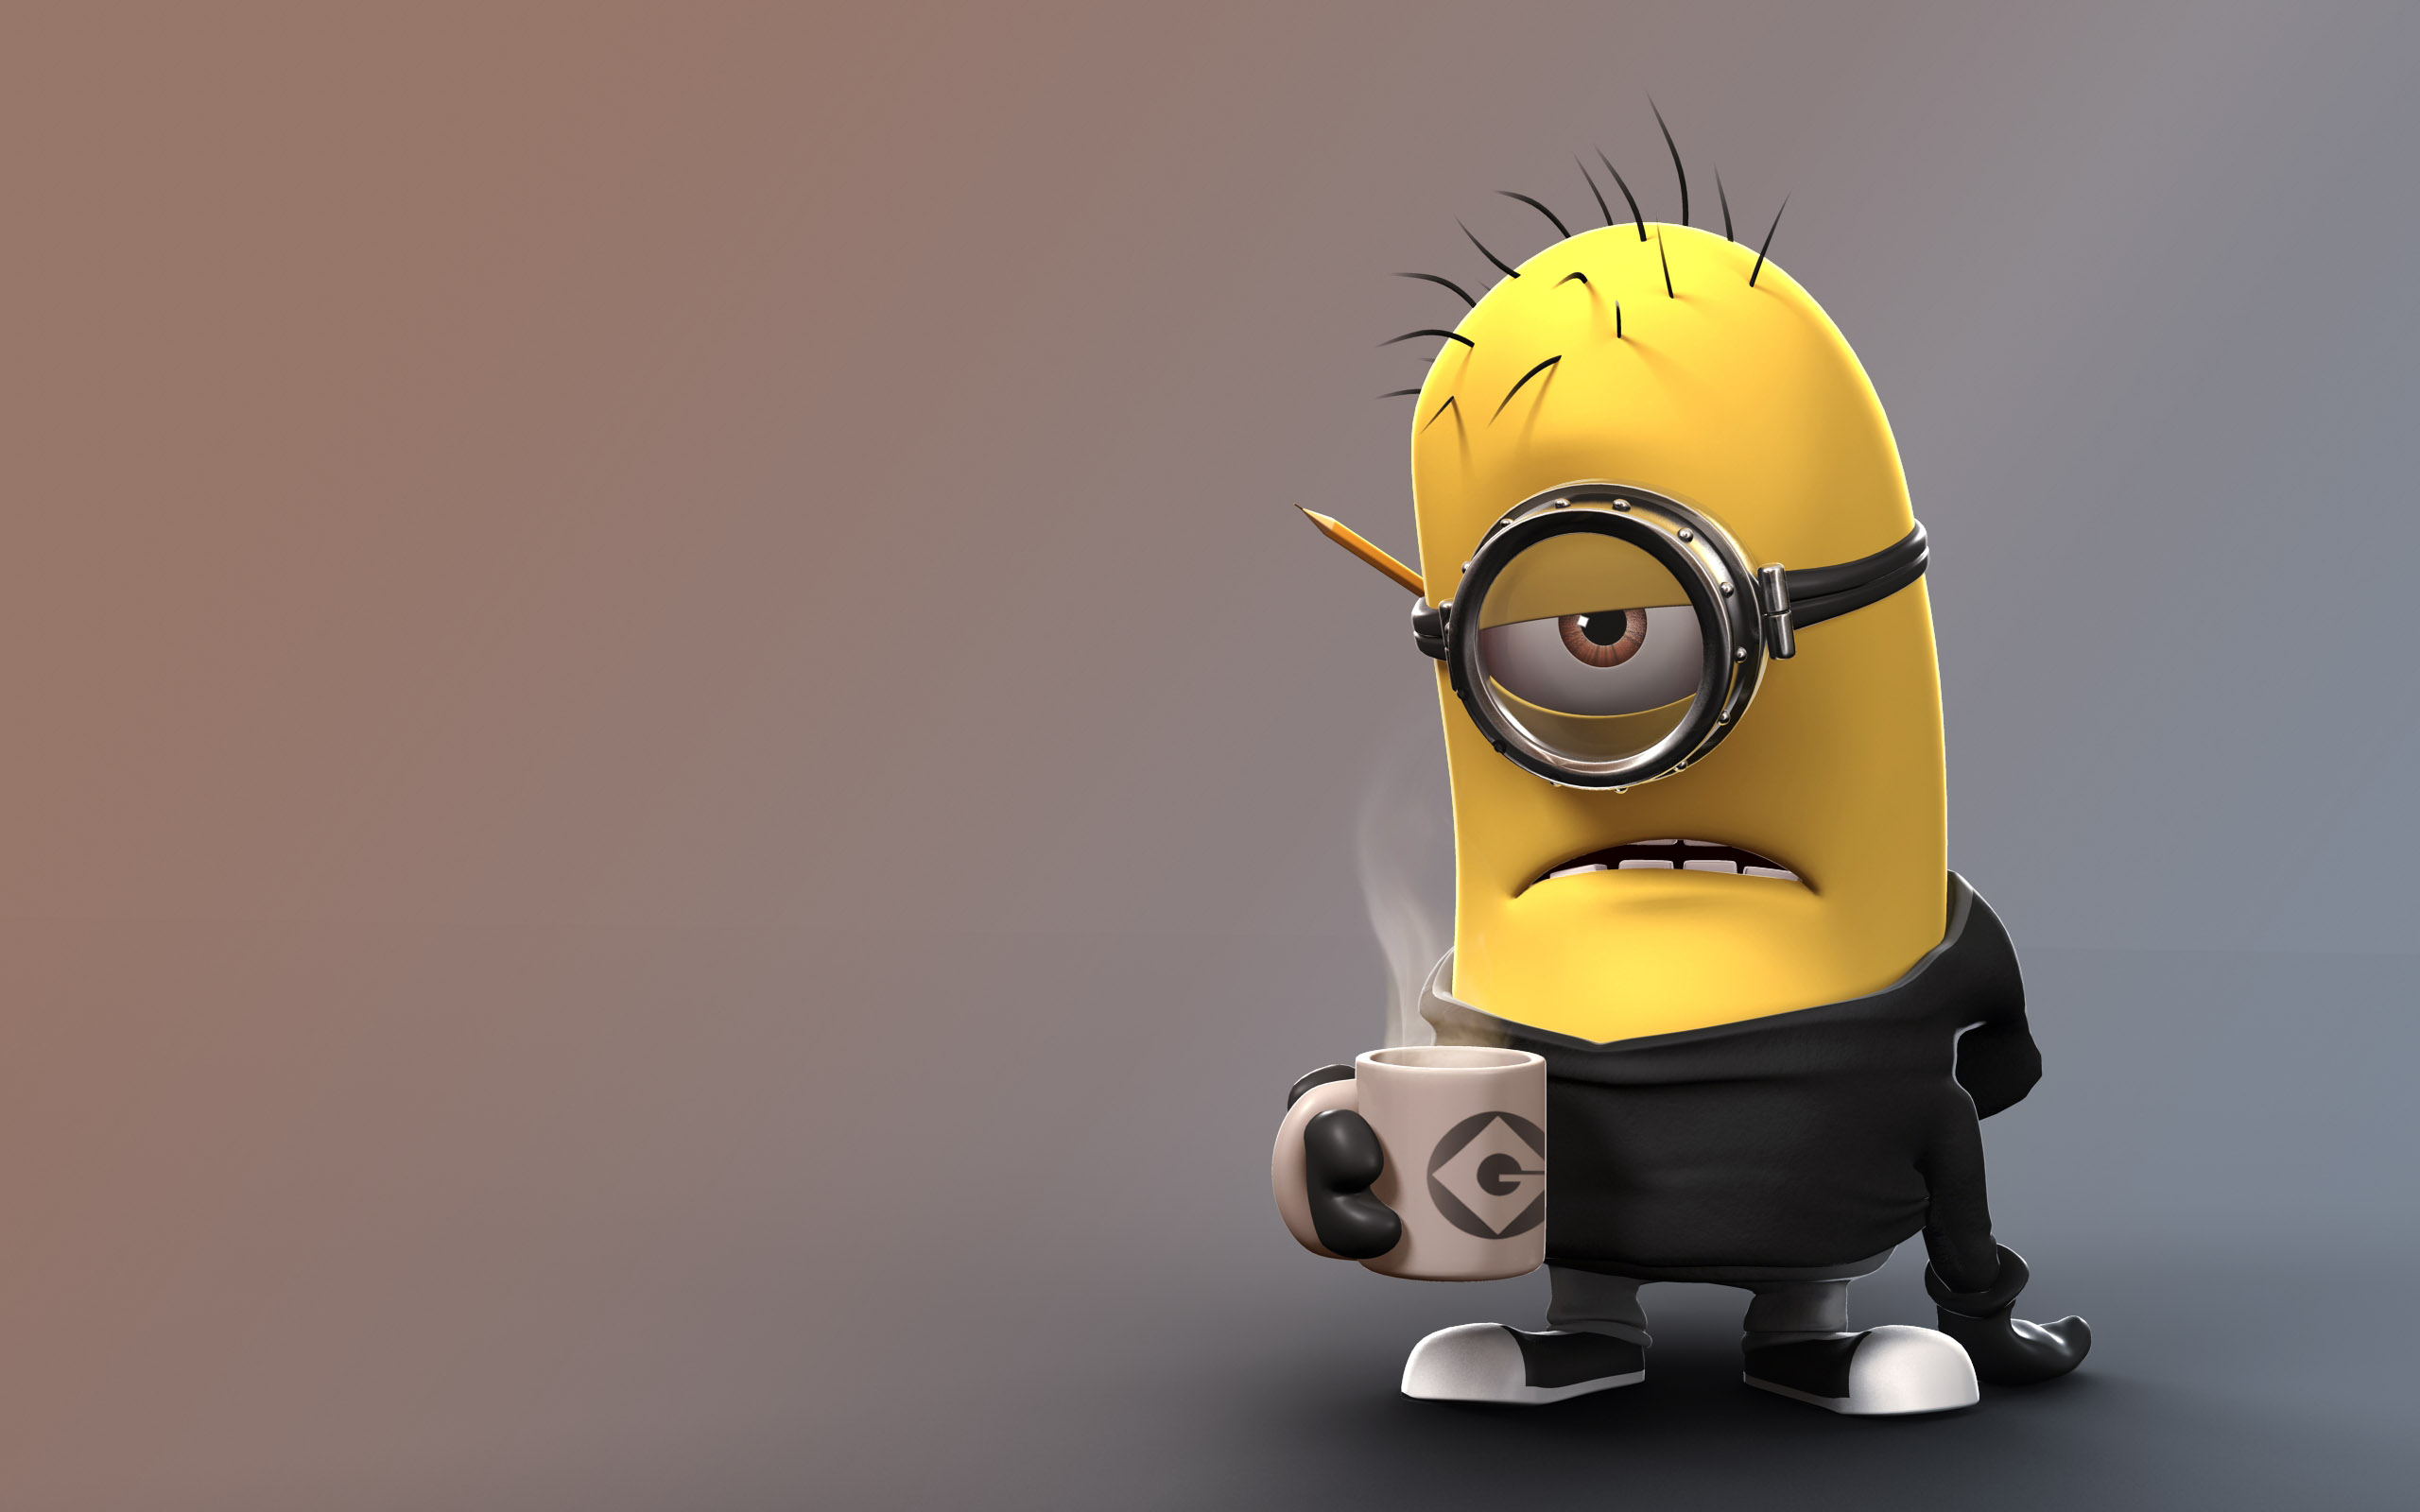 Collection Of Despicable Me 2 Minions Wallpapers Images Fan Art 2560x1600